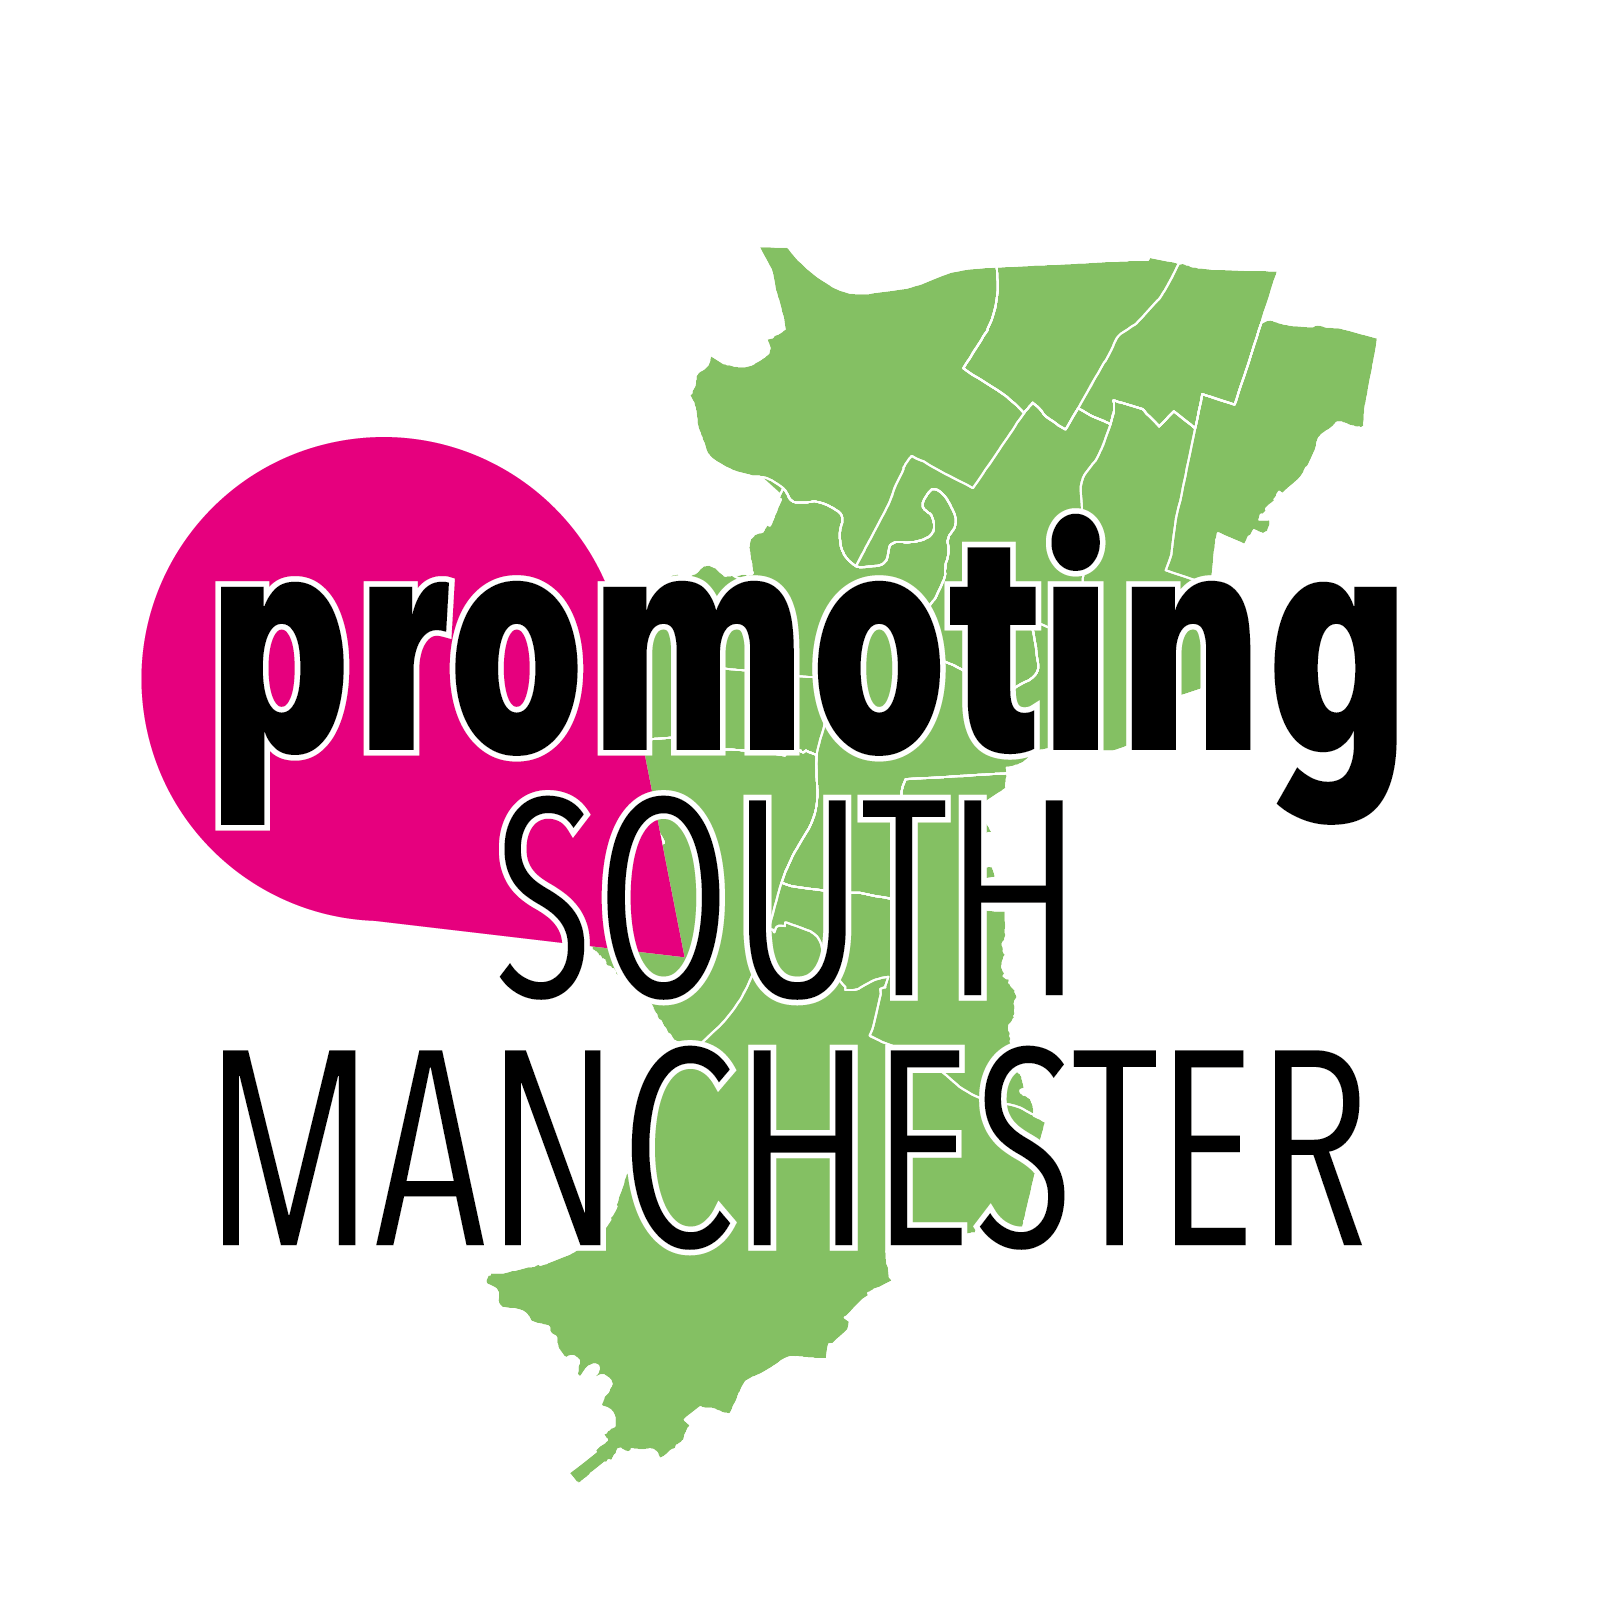 Promoting South Manchester